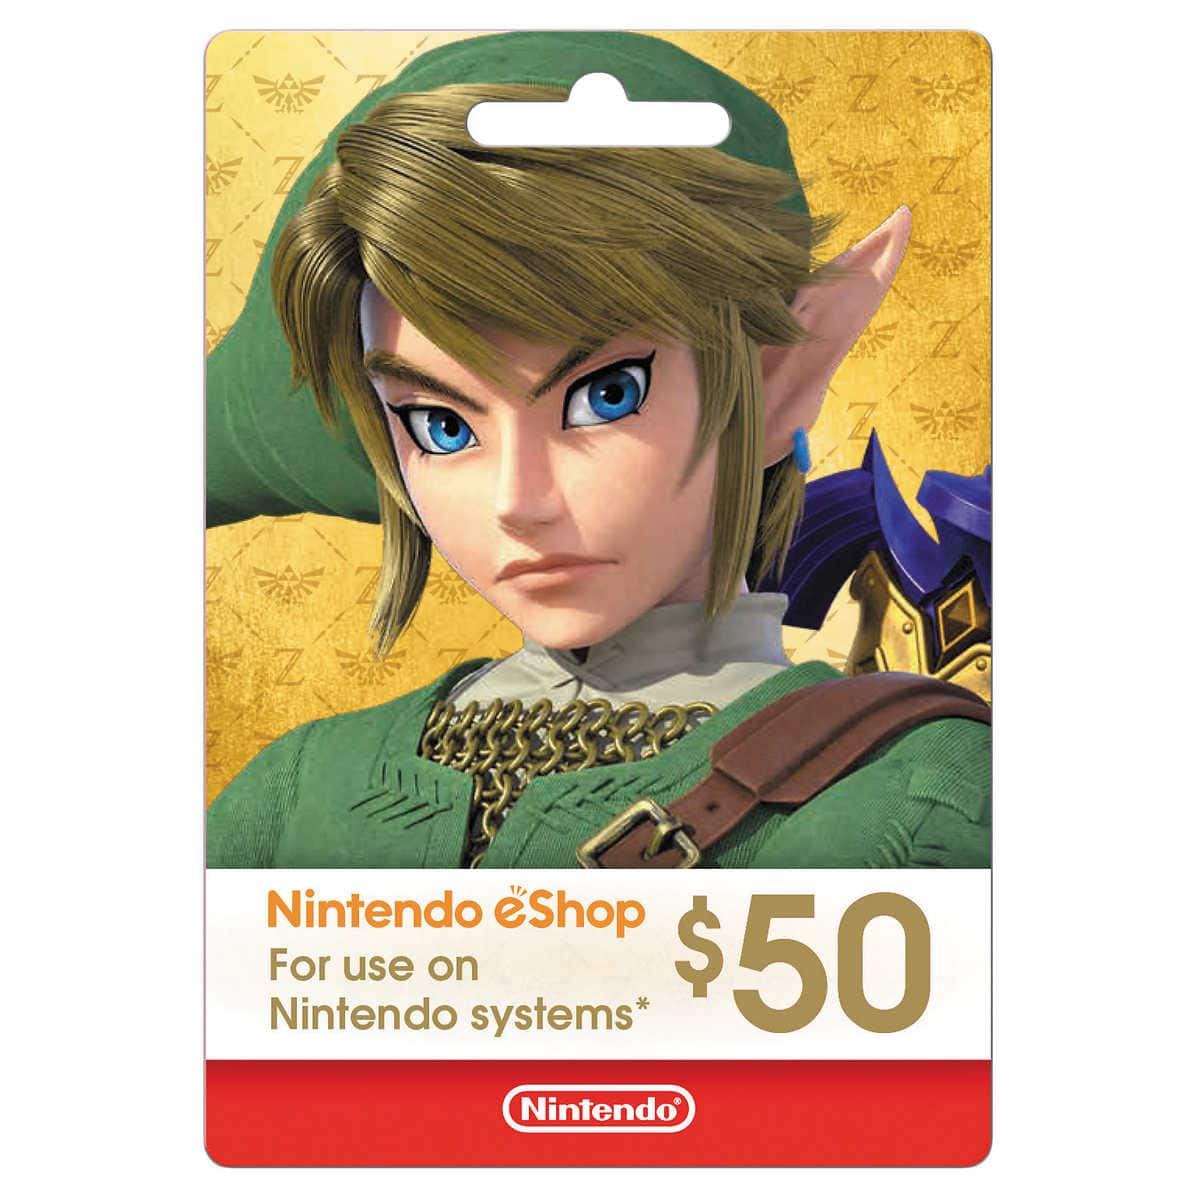 Costco Members 50 Nintendo Eshop Gift Card Digital Delivery Page 4 Slickdeals Net Alibaba.com offers 11,780 nintendo switch console products. slickdeals